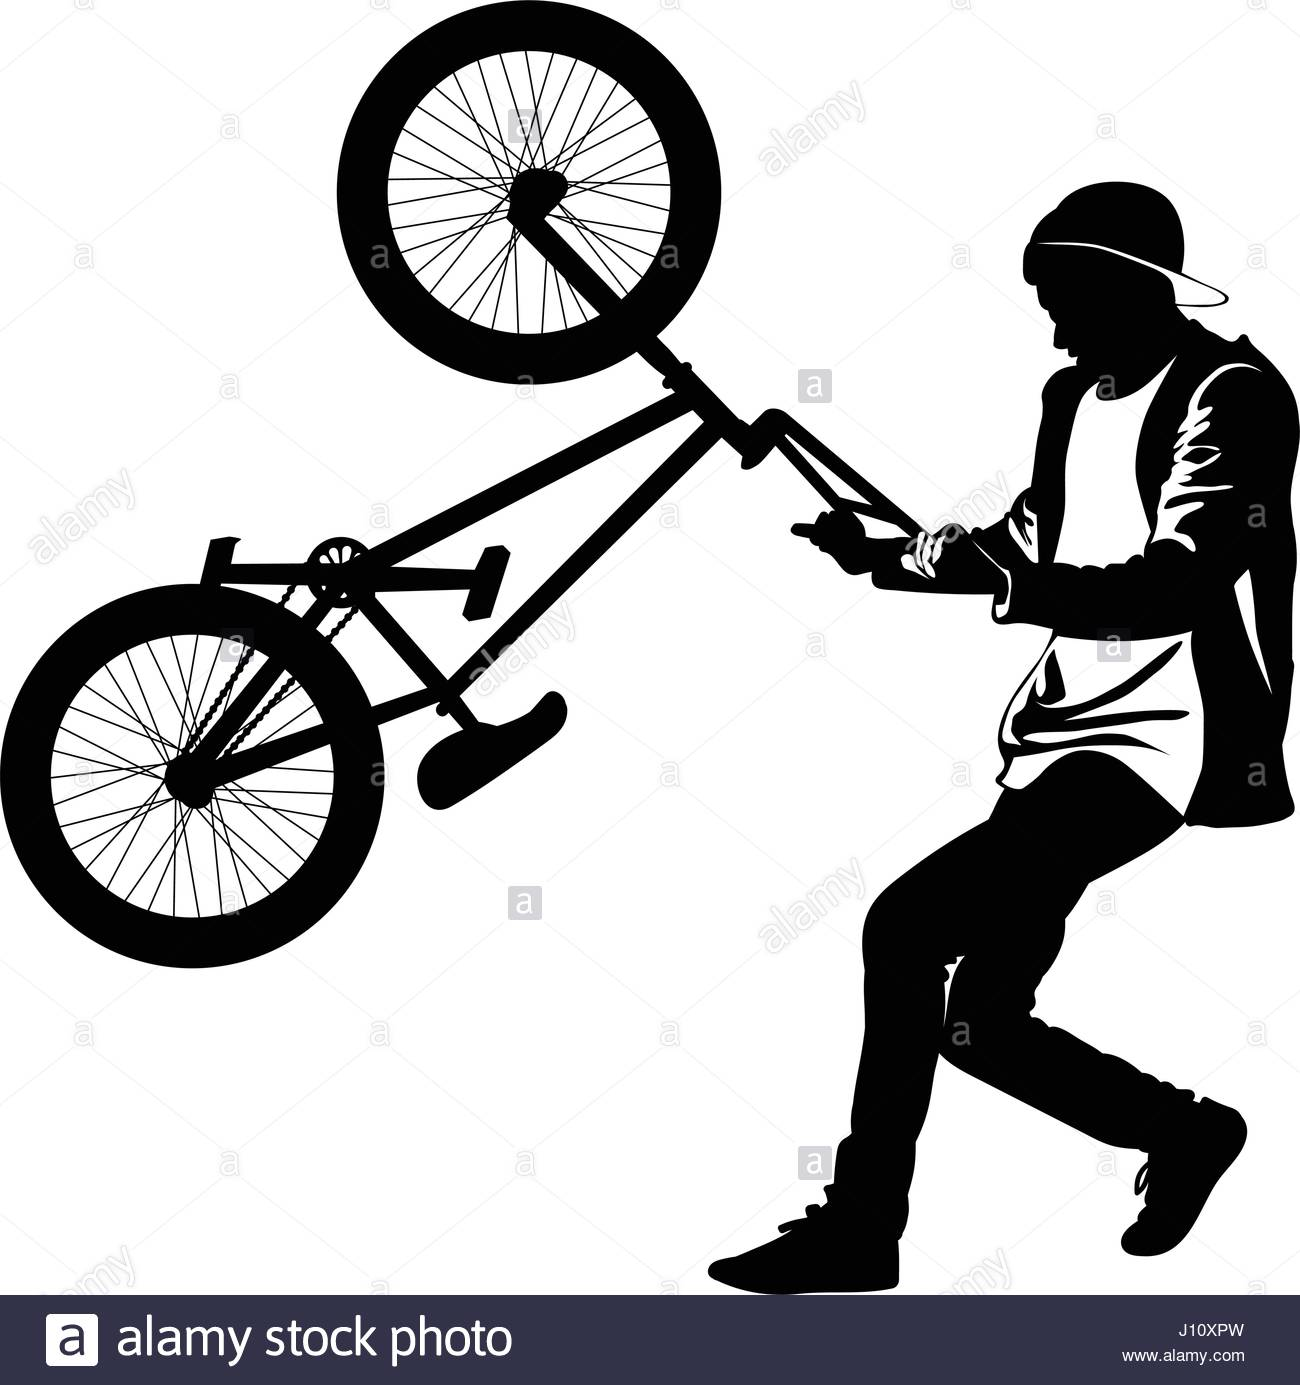 1300x1385 Silhouette Of A Teenager With A Bicycle Standing On The Rear Wheel